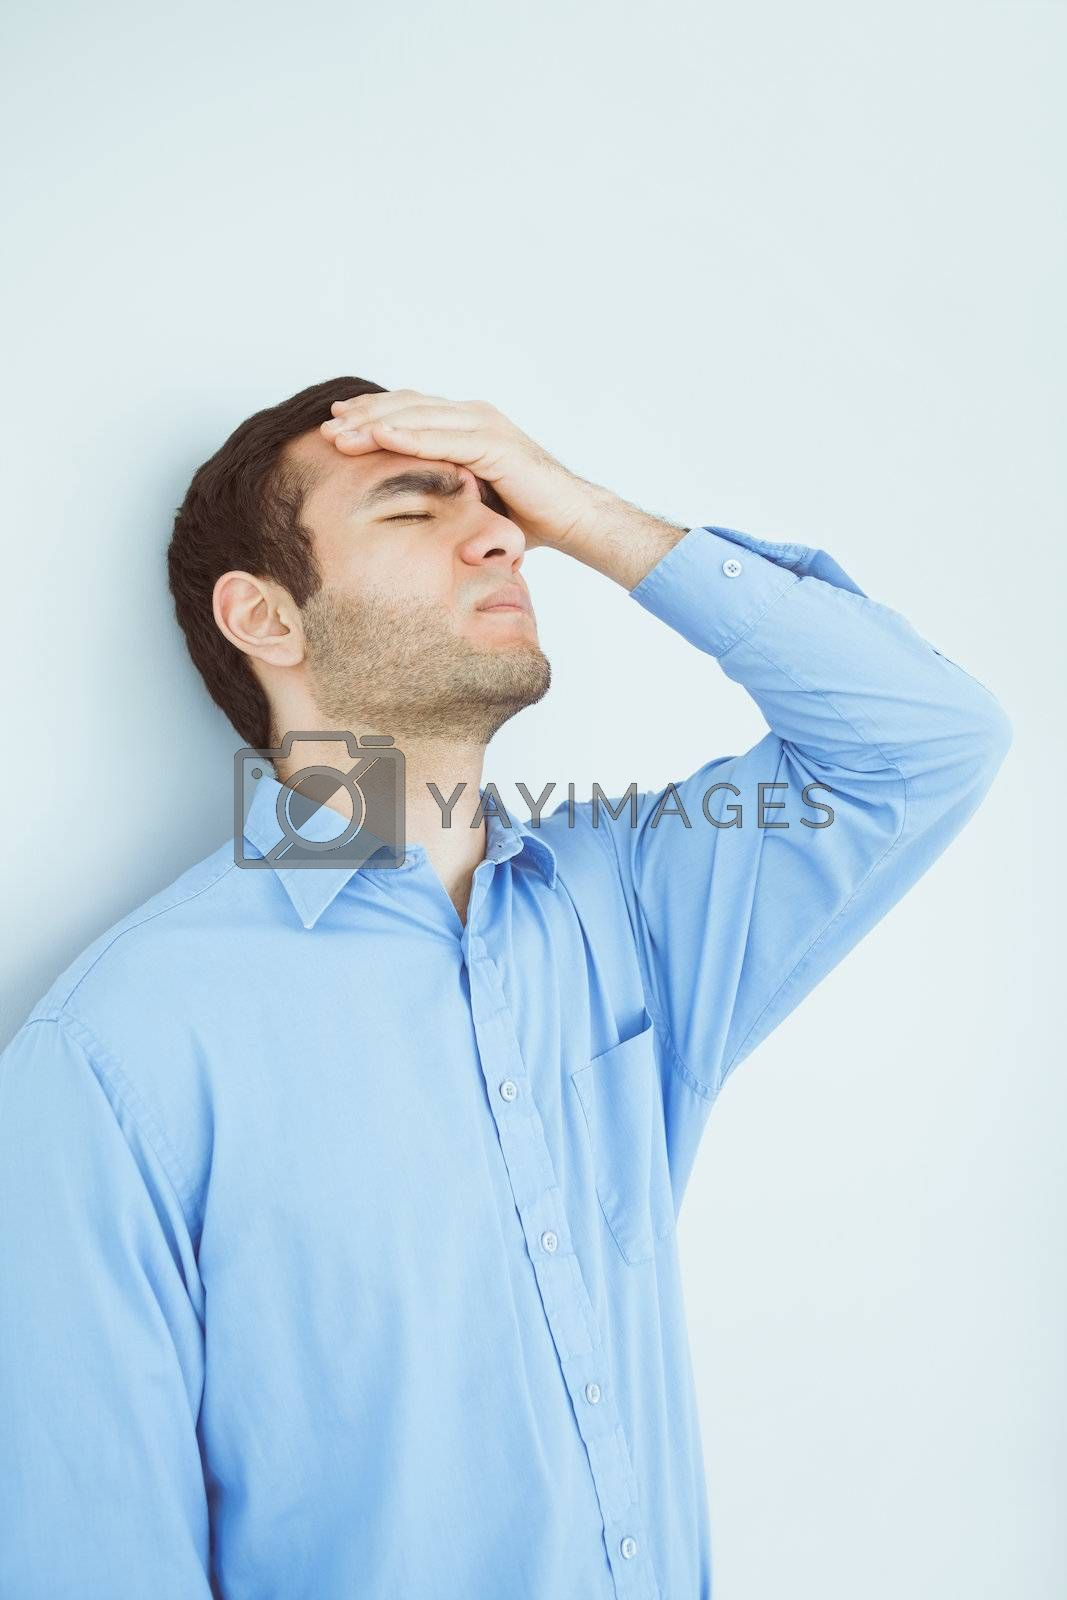 Upset man eyes closed and a hand on the forehead leaning against a wall by Wavebreakmedia